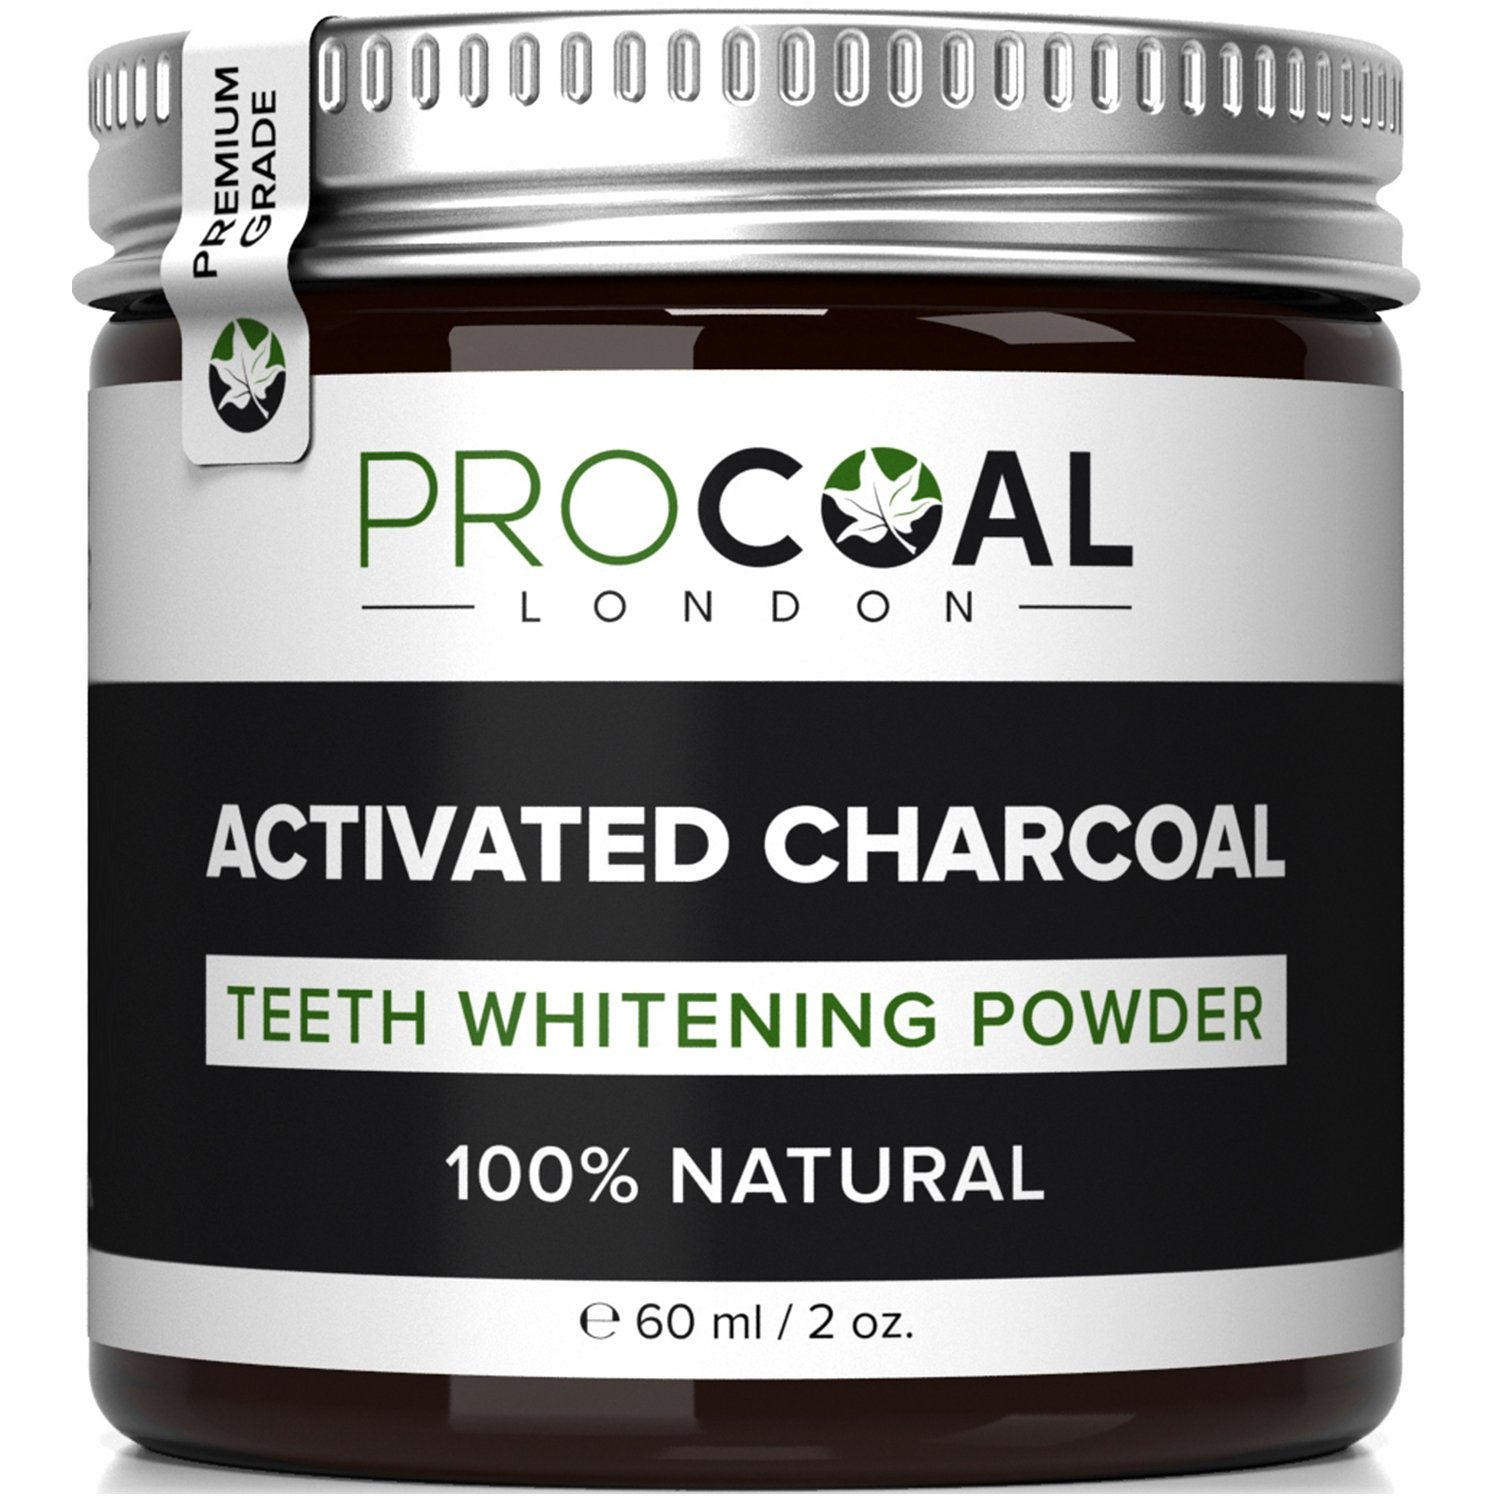 Charcoal Teeth Whitening Powder, Charcoal Toothpaste by Procoal - 100% Money Back, Superior Than Crest Teeth Whitening Kits - Made in UK product image